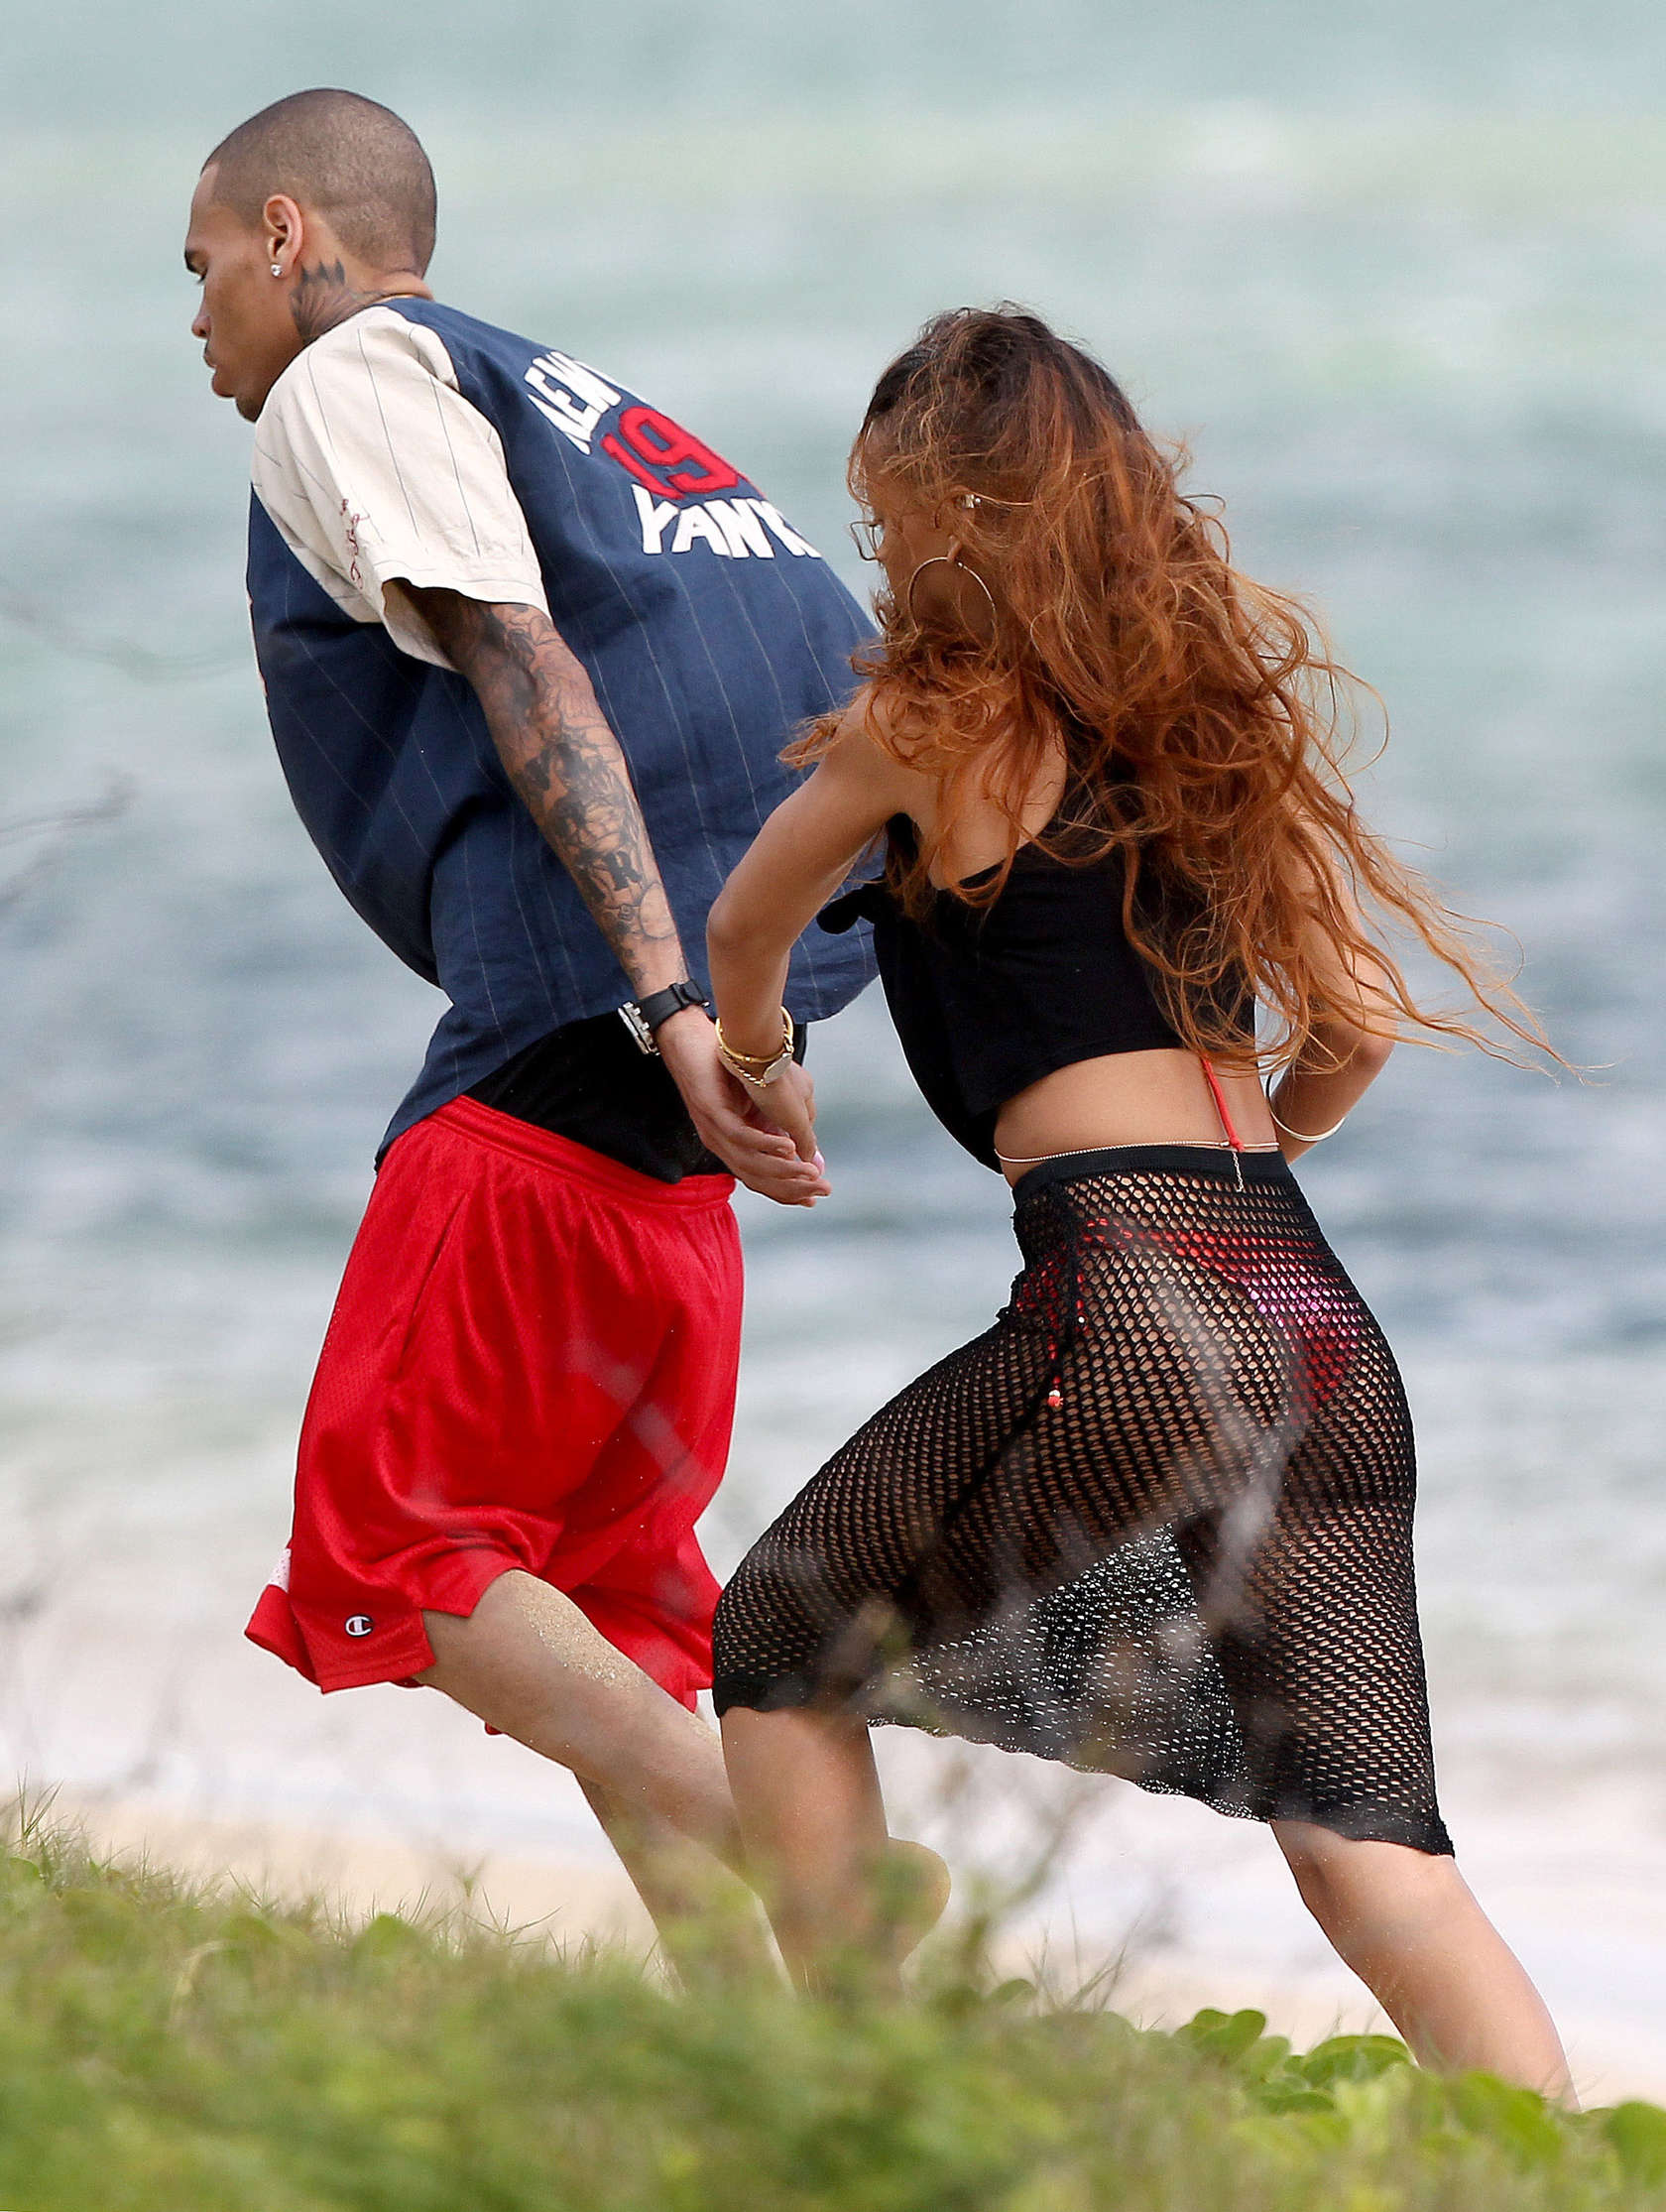 rihanna-and-chris-brown-back-together-2017-engaged